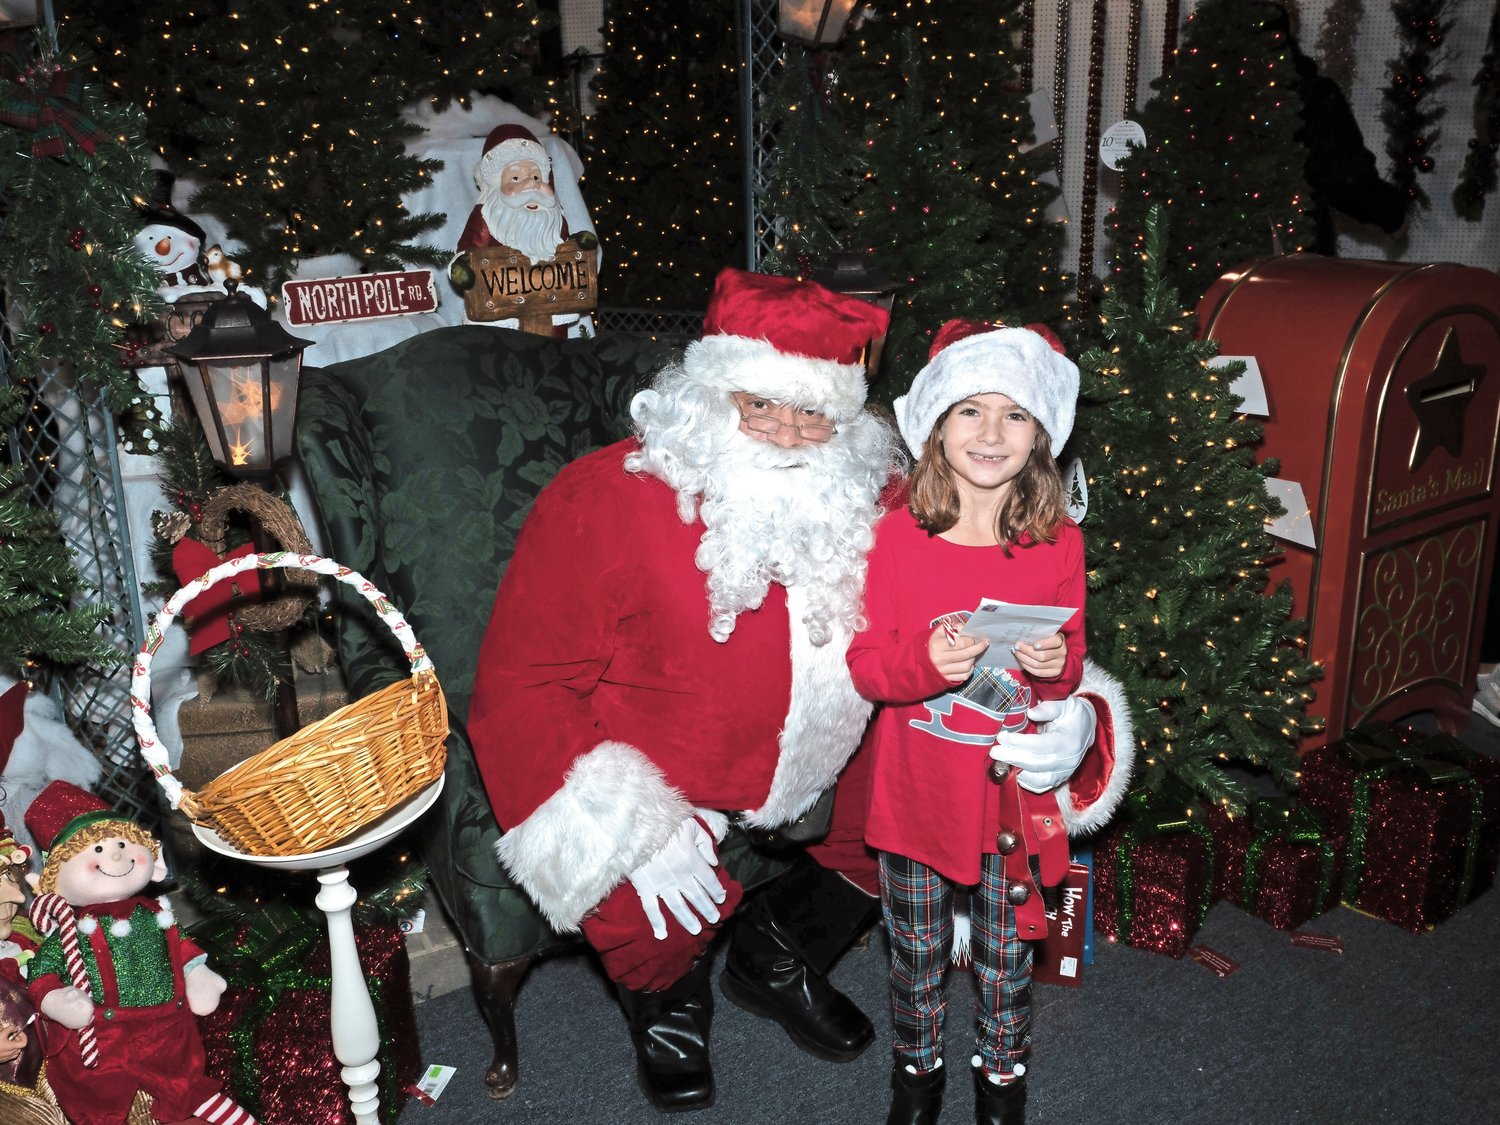 Melody Murphy, 7, took a photo with Santa.